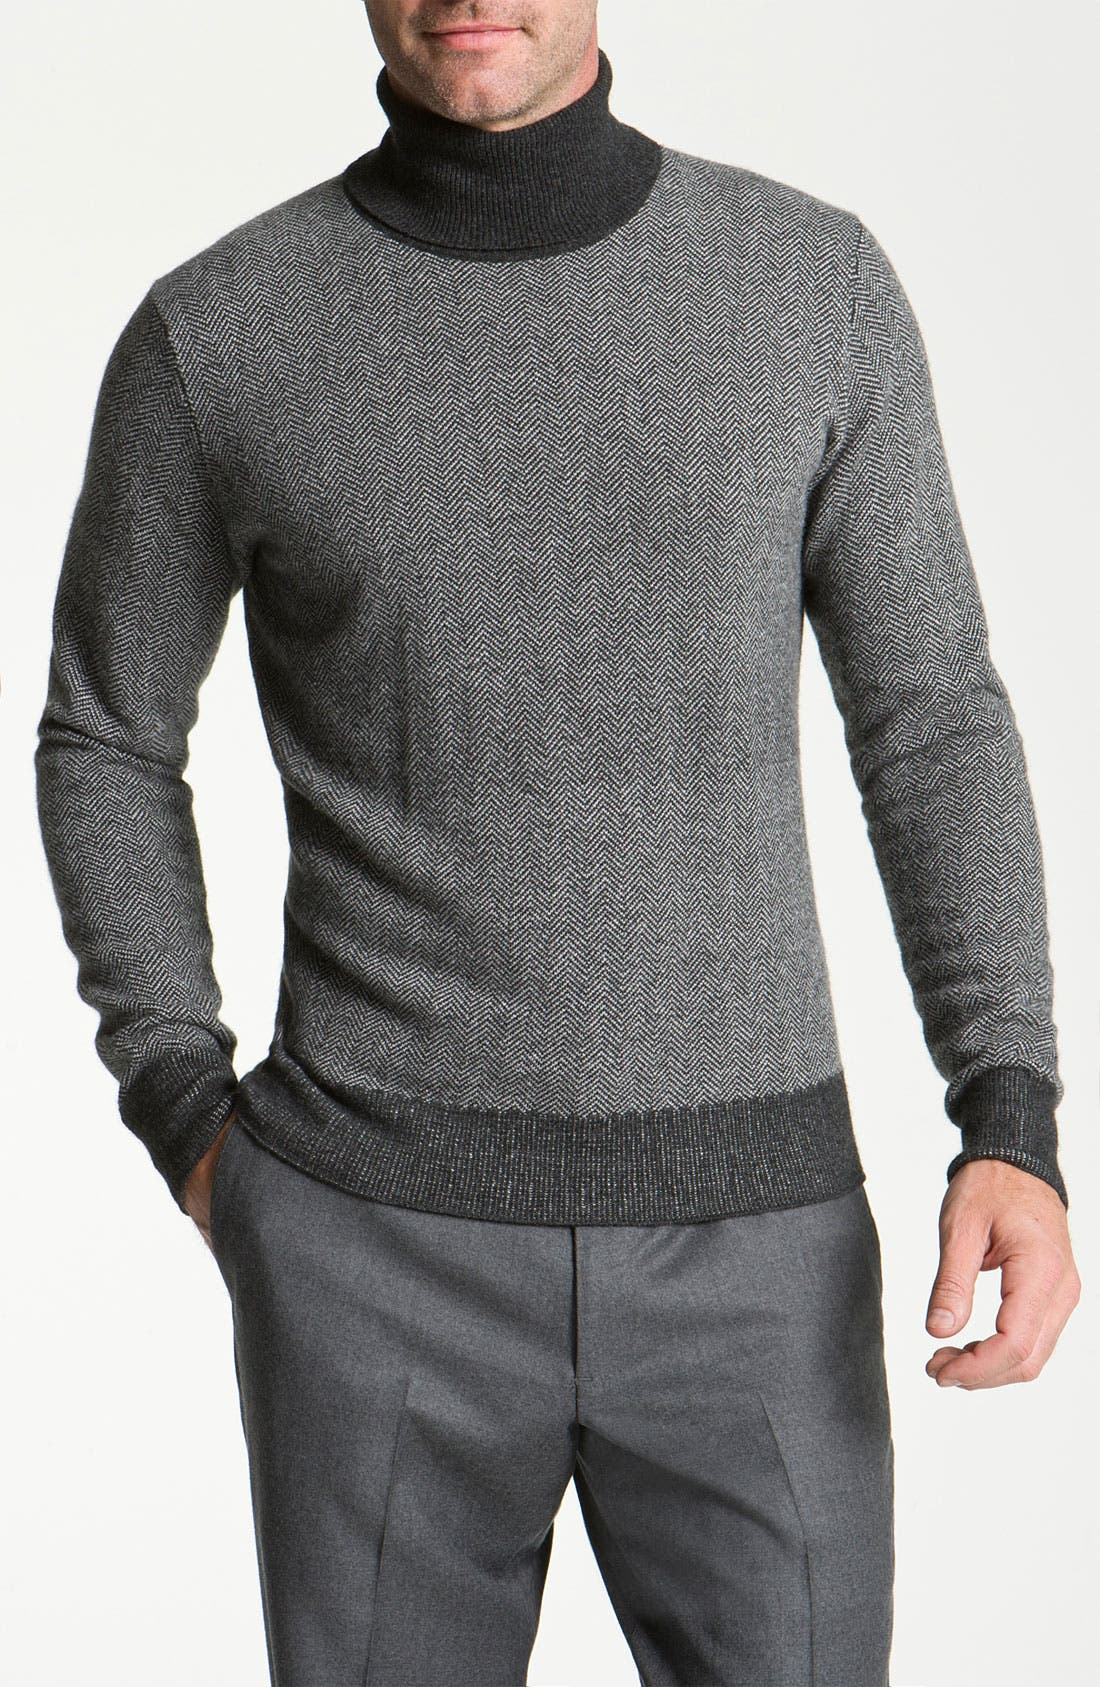 Alternate Image 1 Selected - Canali Merino Wool & Cashmere Turtleneck Sweater